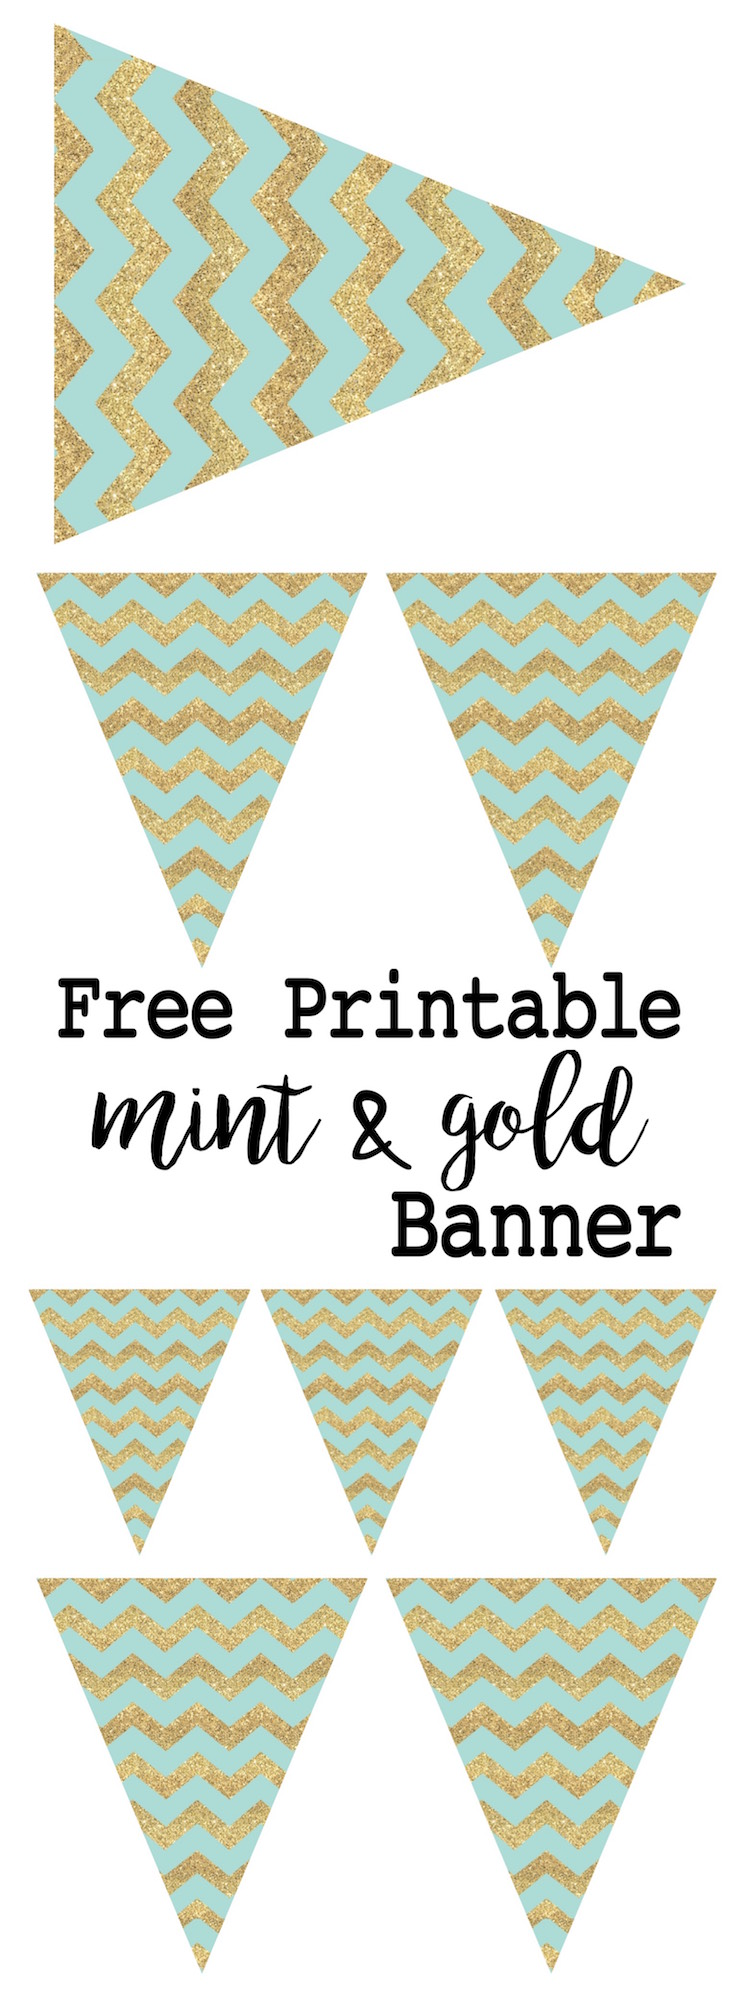 Mint and Gold Banner Free Printable - Paper Trail Design